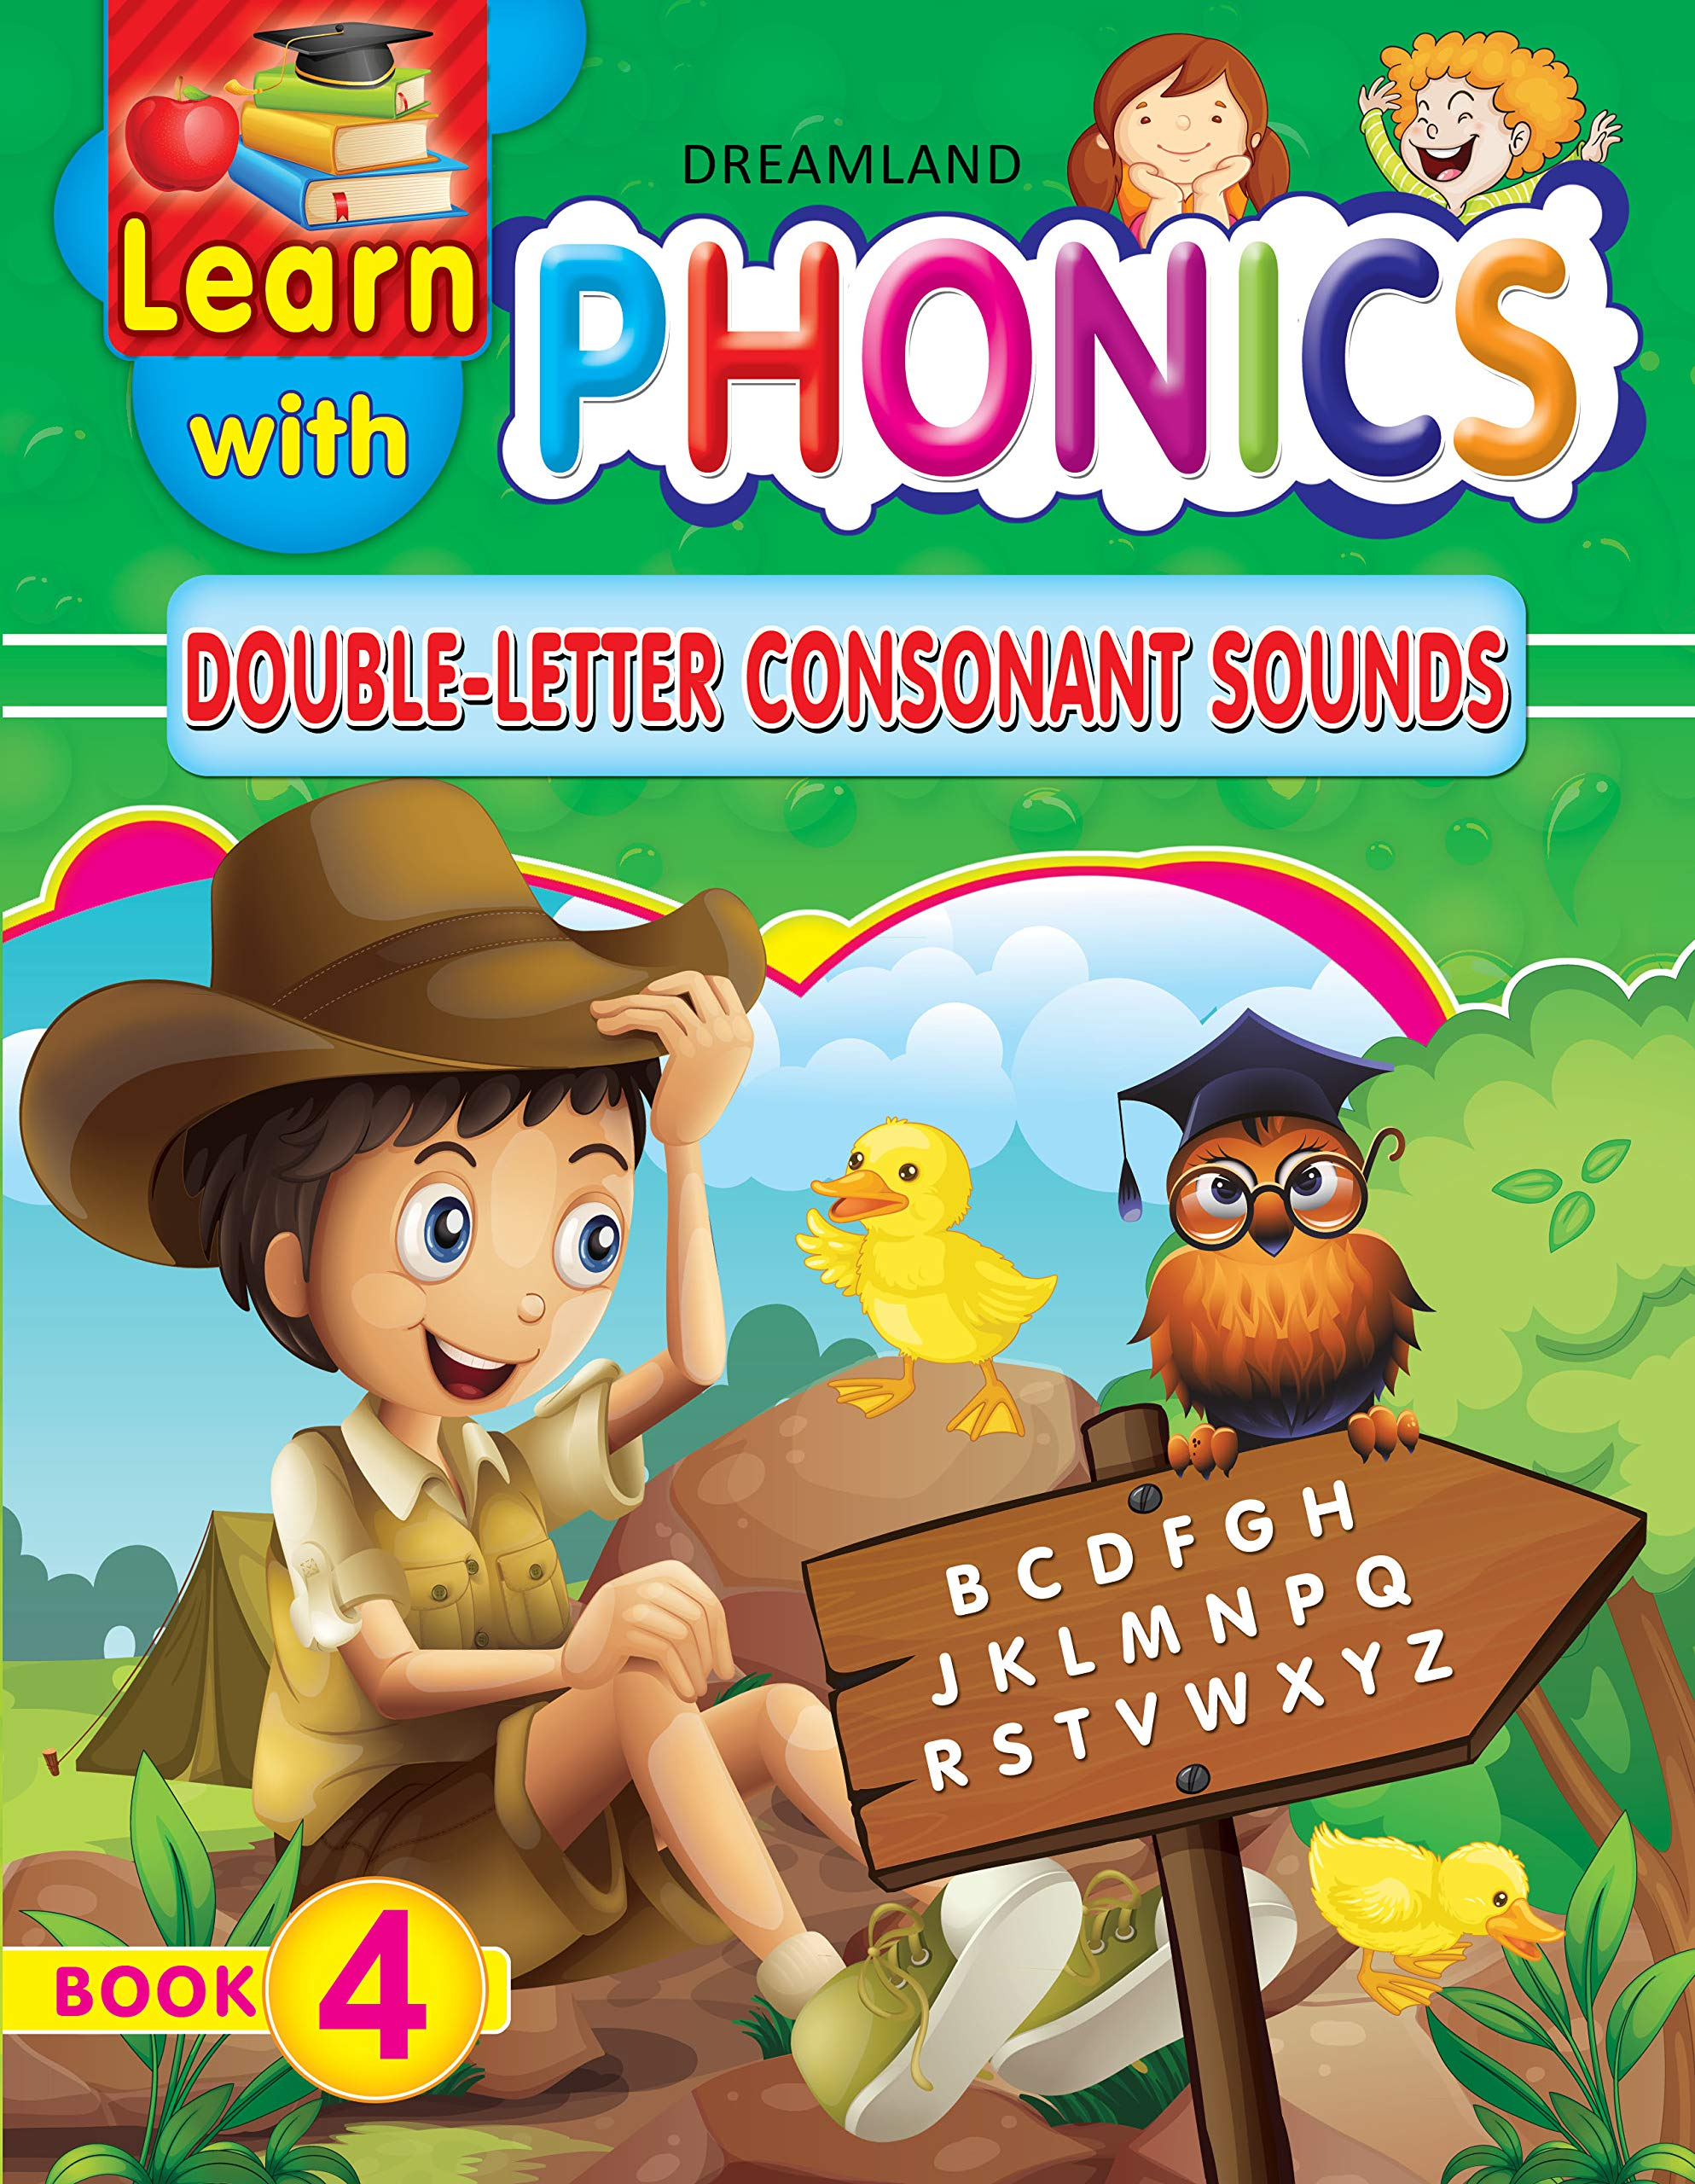 Learn with Phonics (Double-Letter Consonant Sounds)